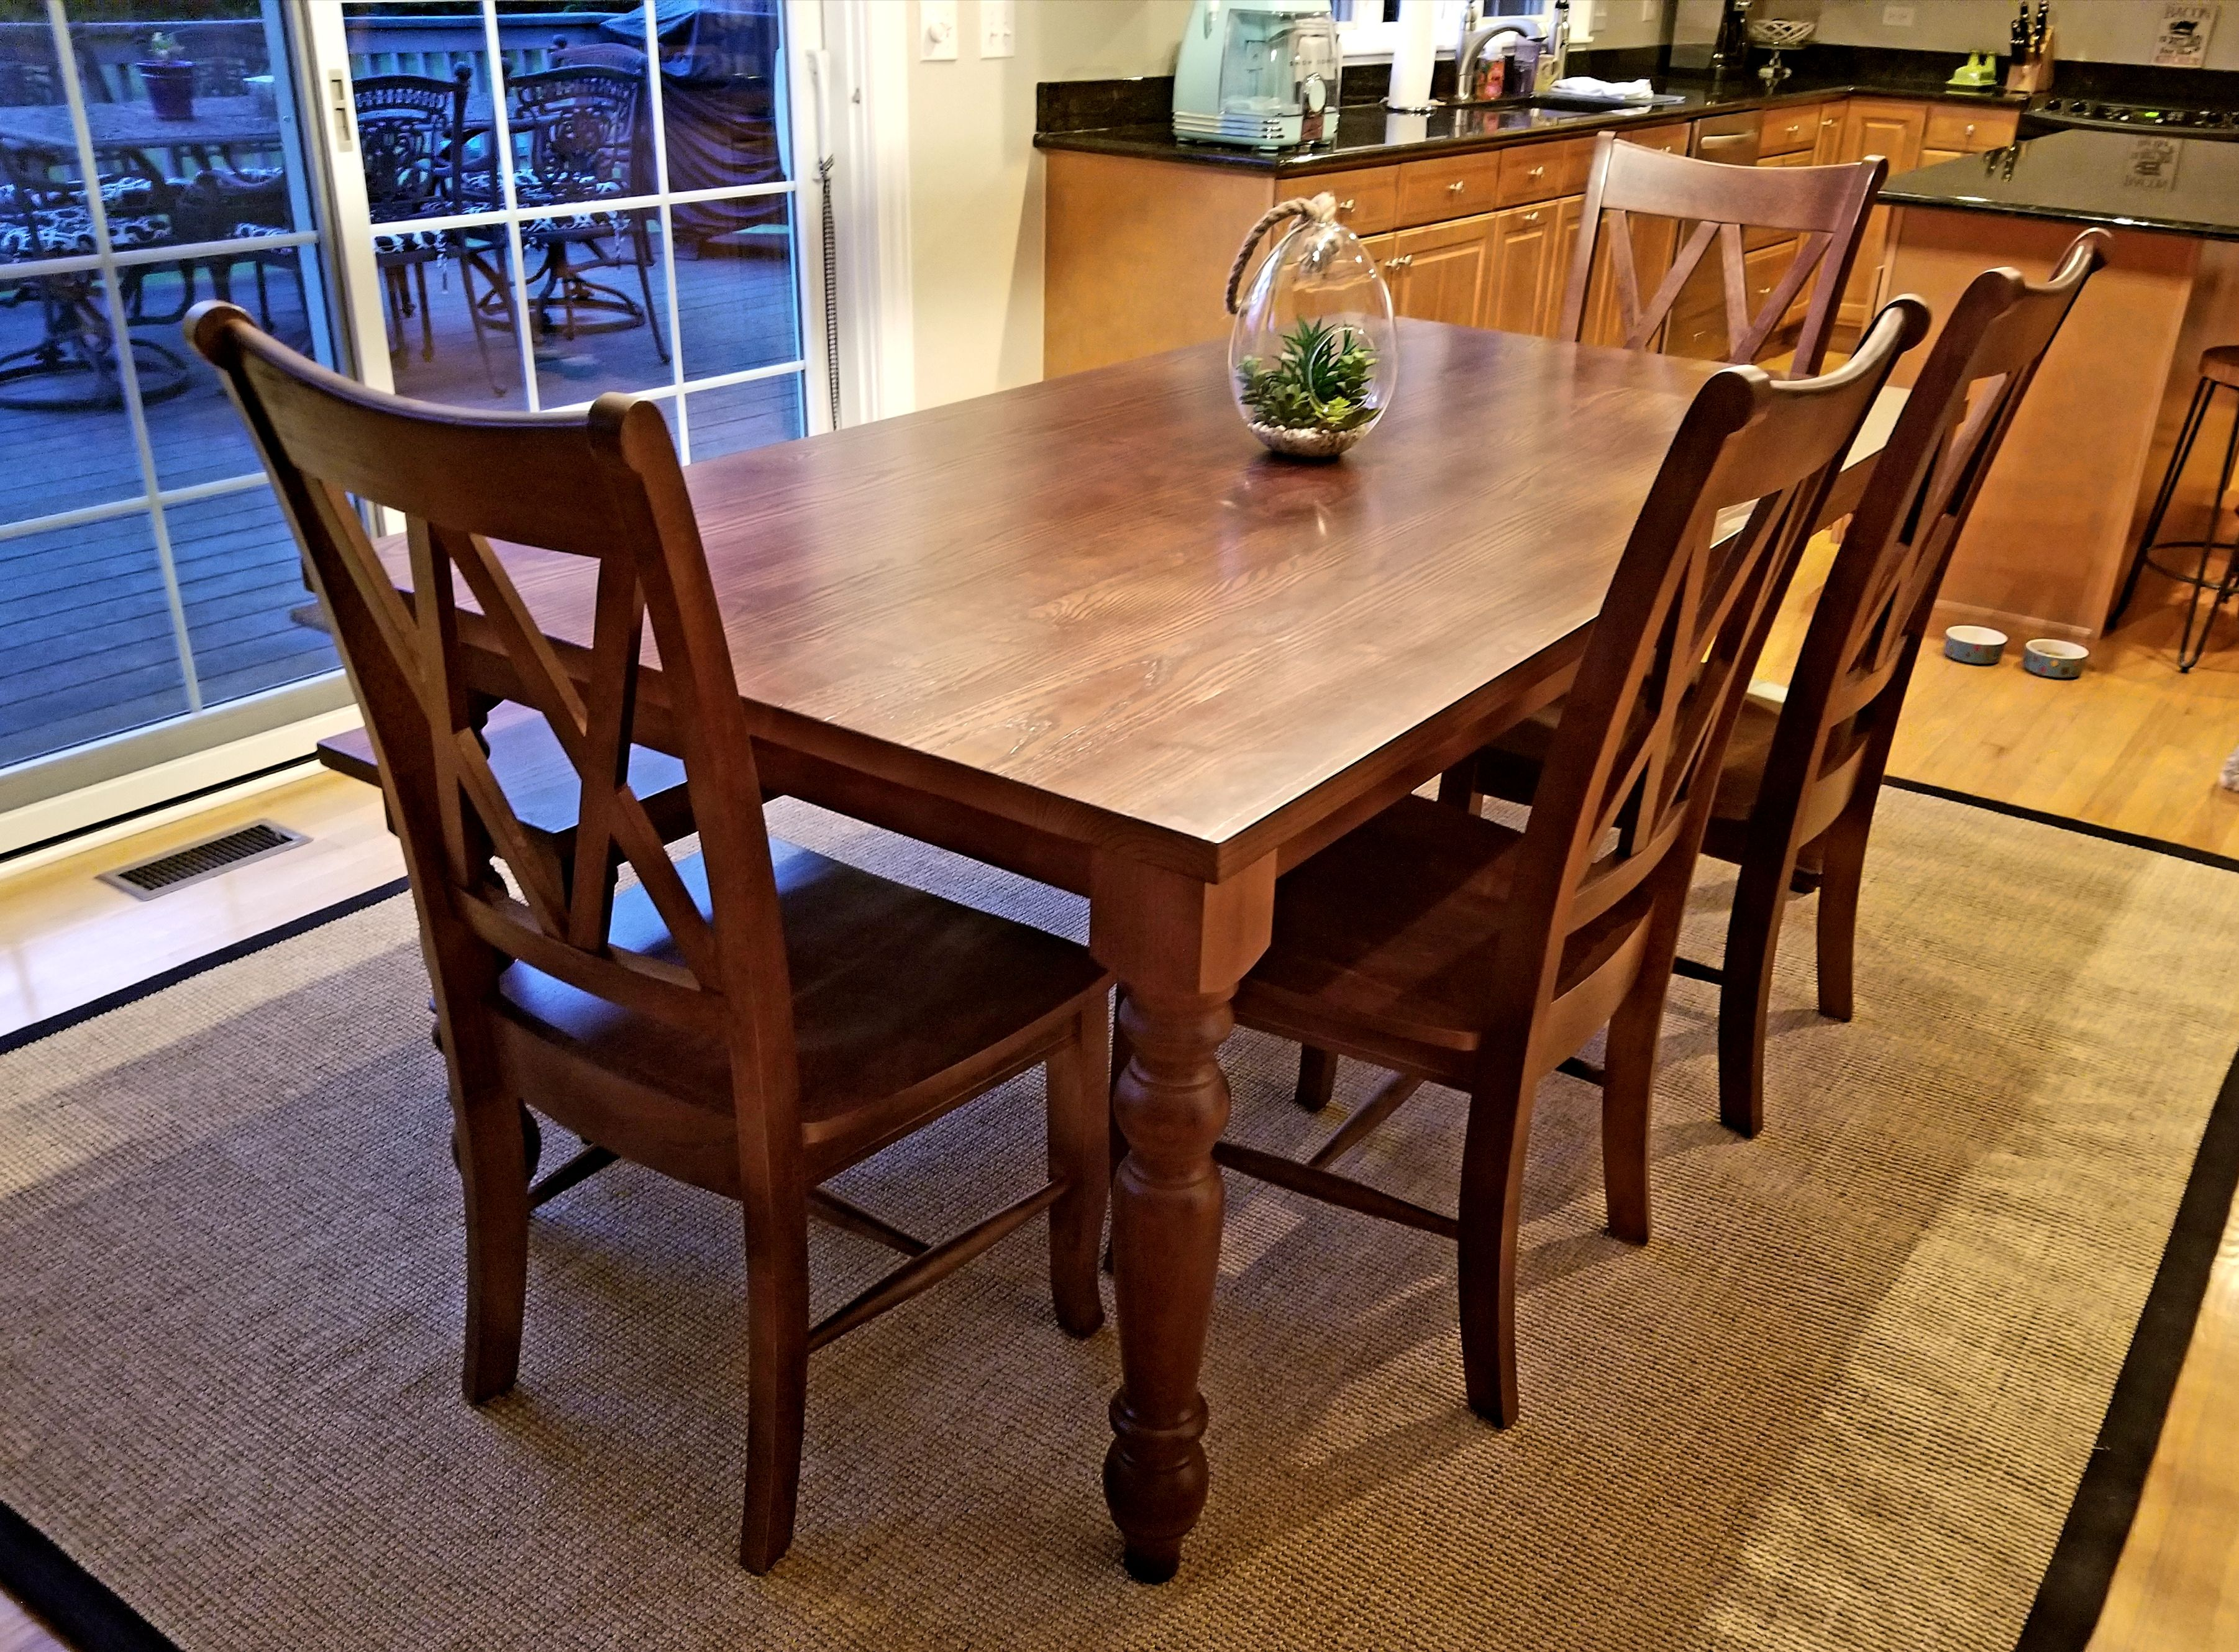 Farmhouse charm. Our Old English dining table brings ...